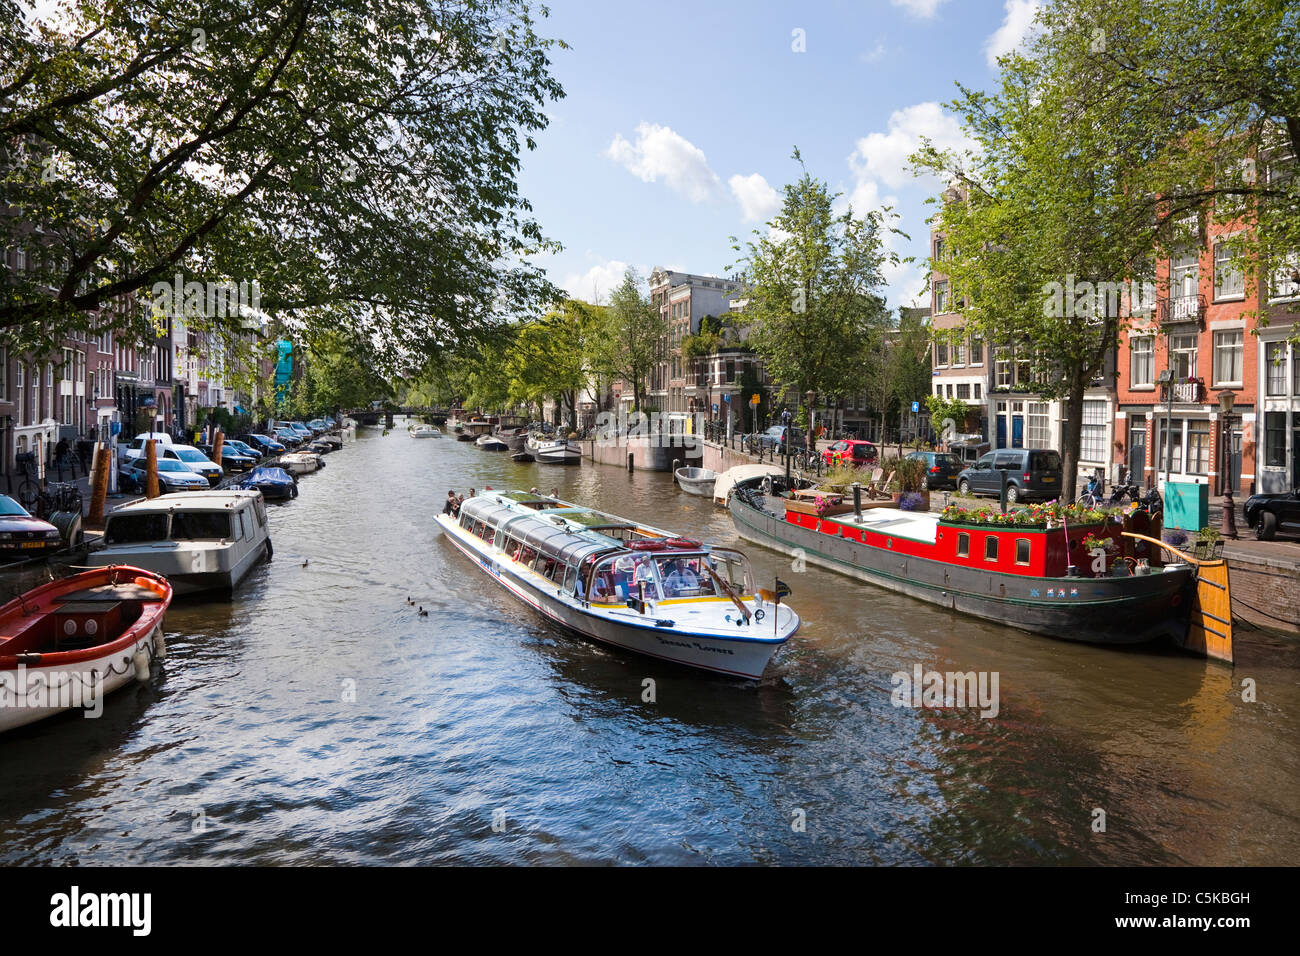 Tourist canal boat sailing along a canal in Amsterdam, Netherlands - Stock Image